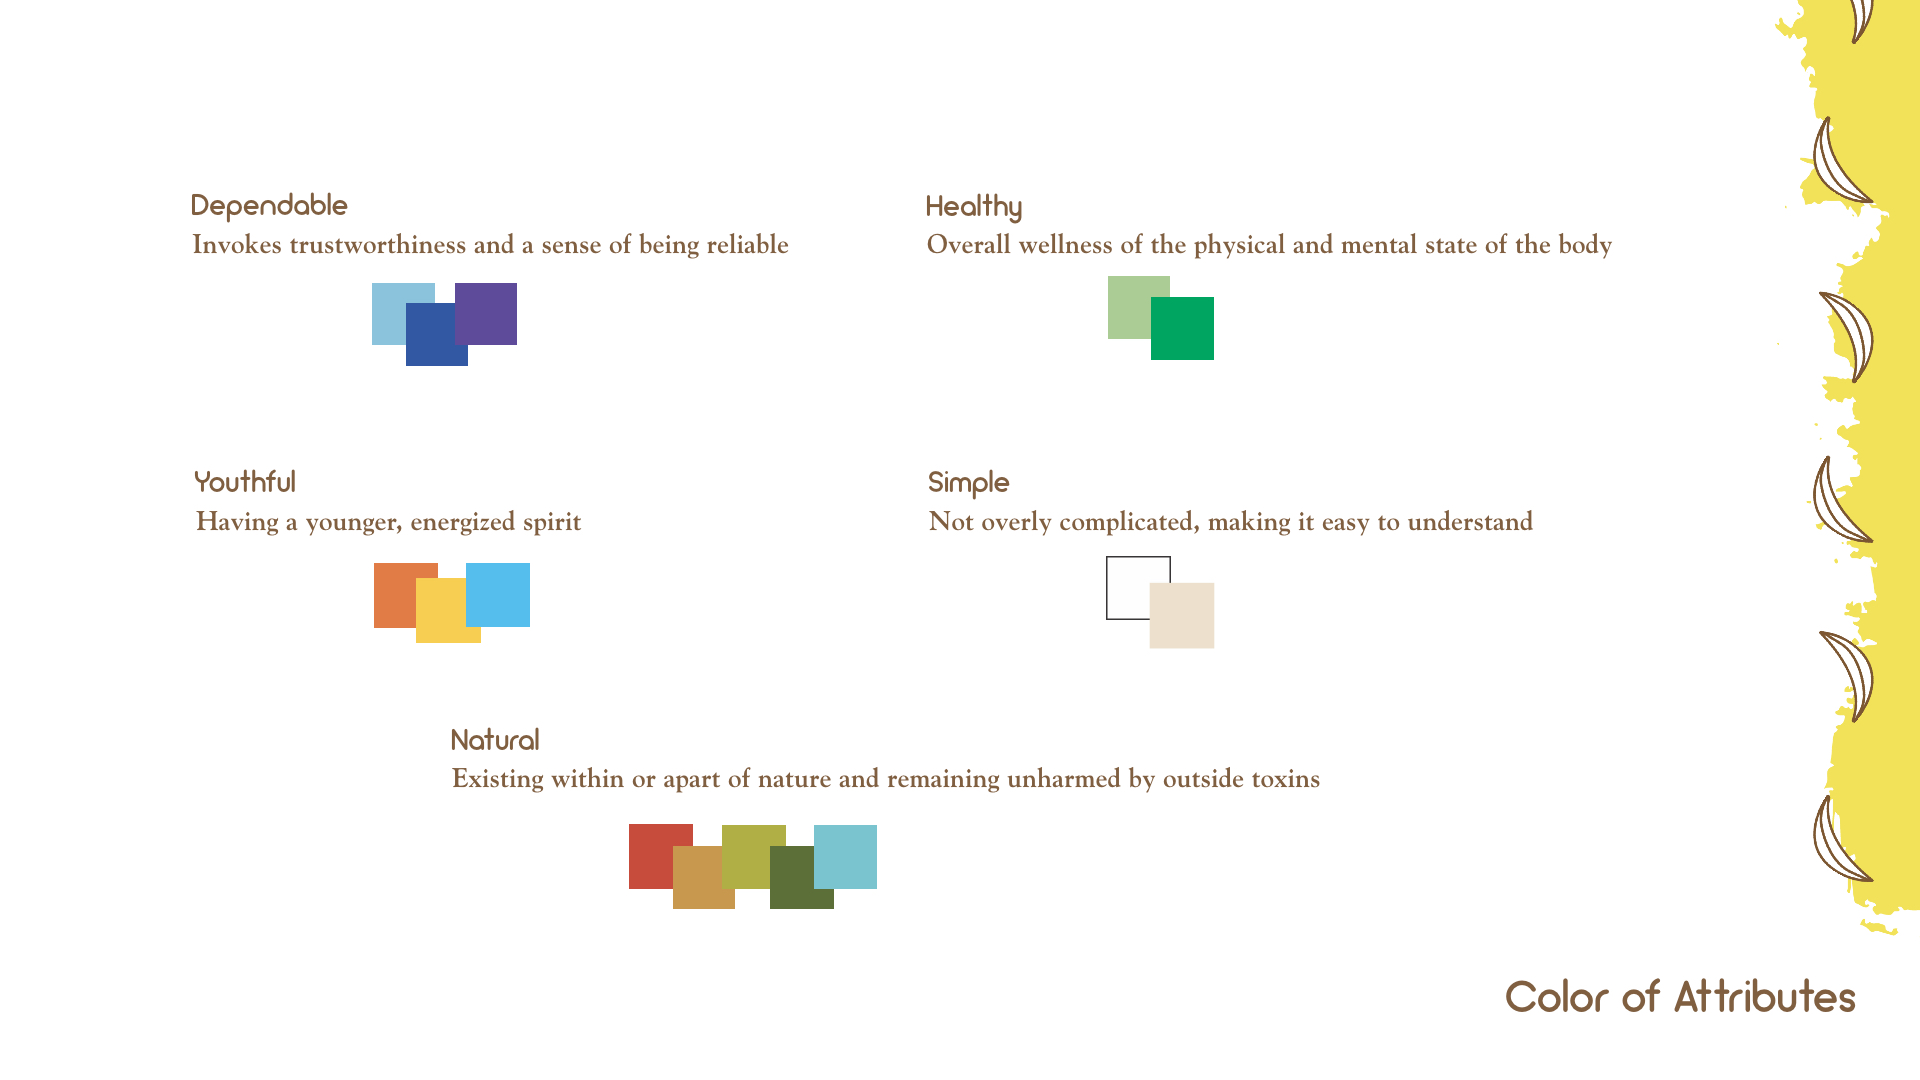 Color of Attributes